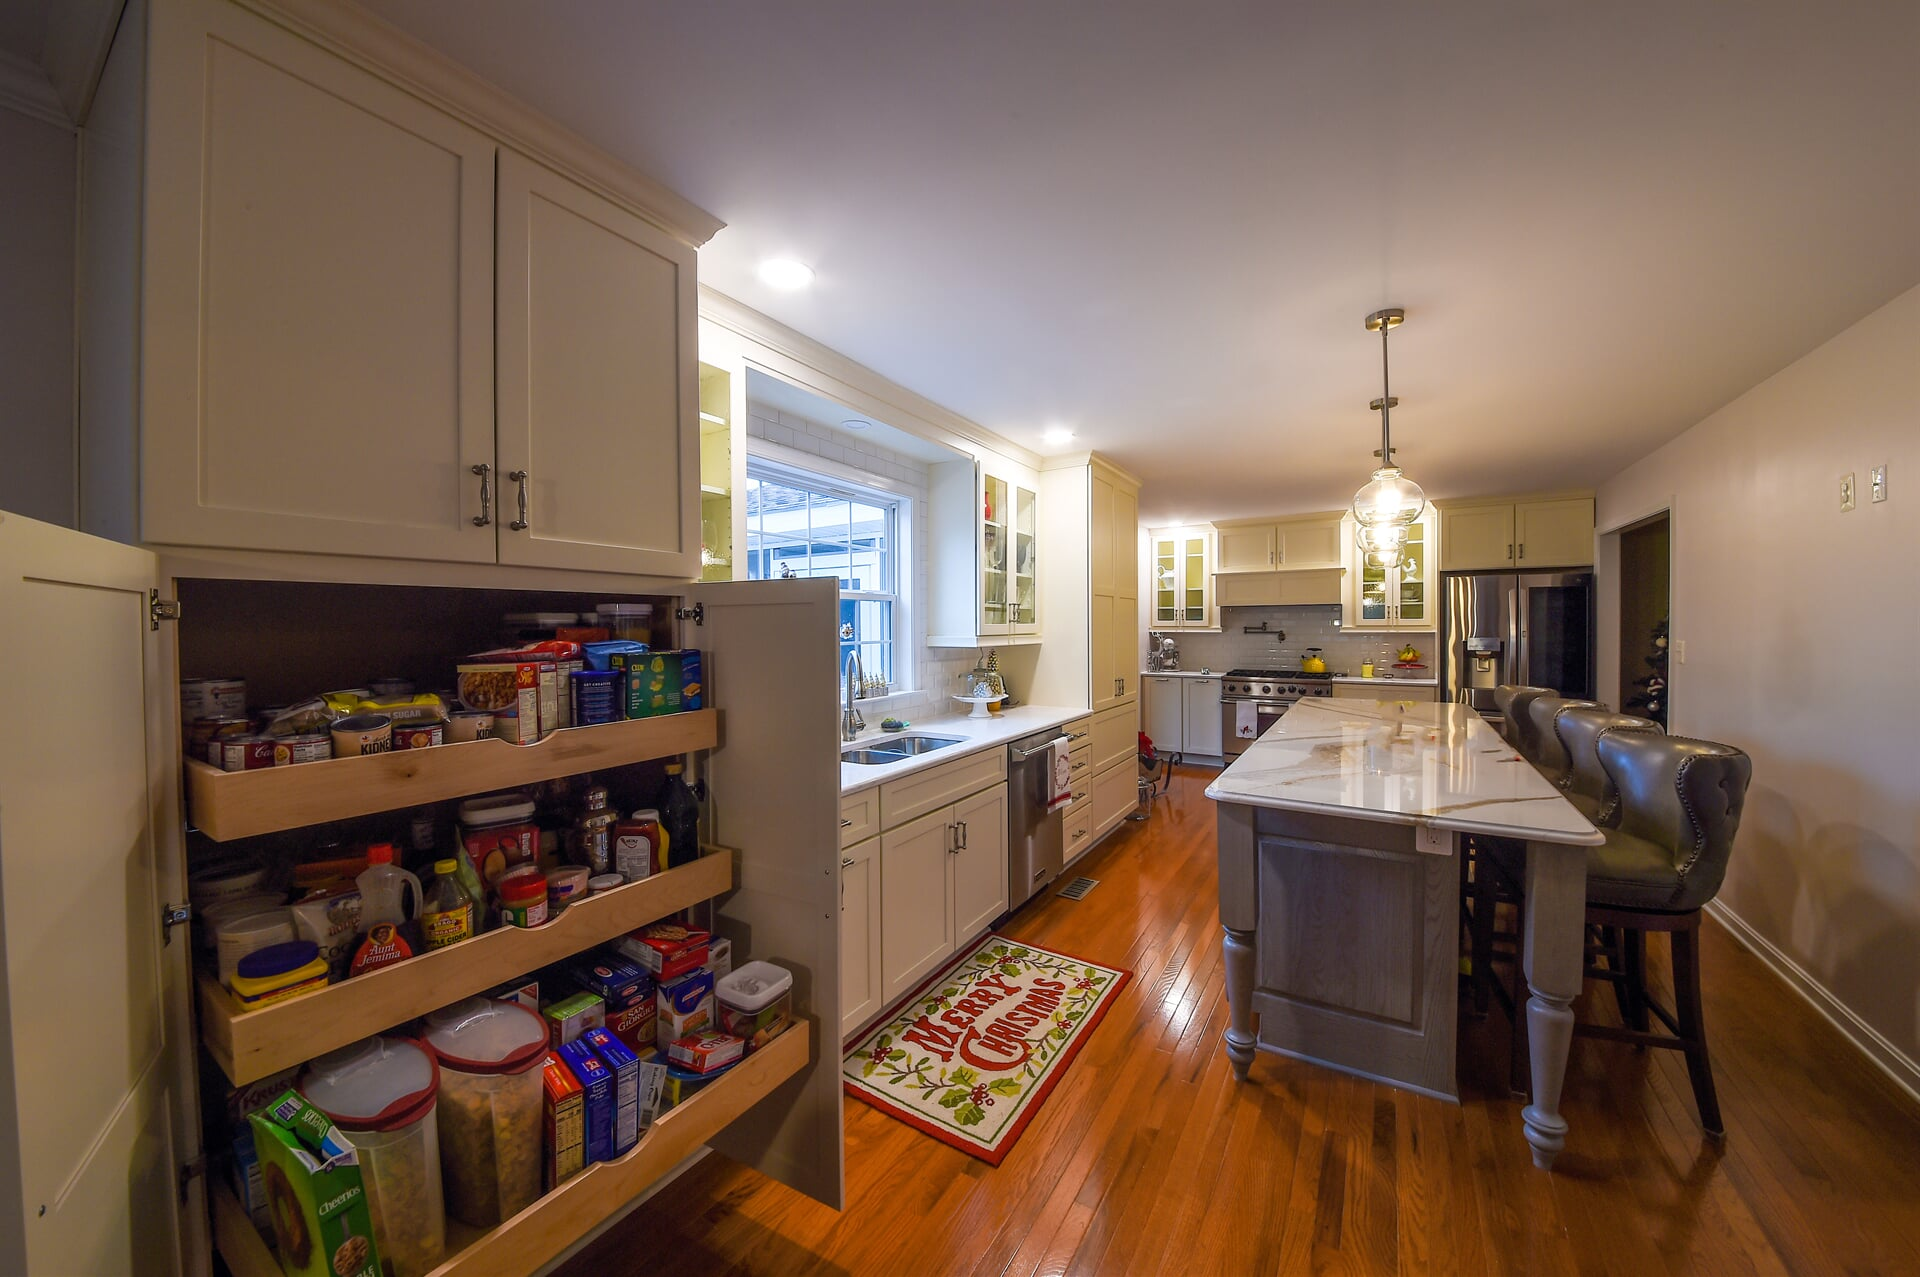 Kitchen remodeling in La Plata, MD by Southern Maryland Kitchen Bath Floors & Design